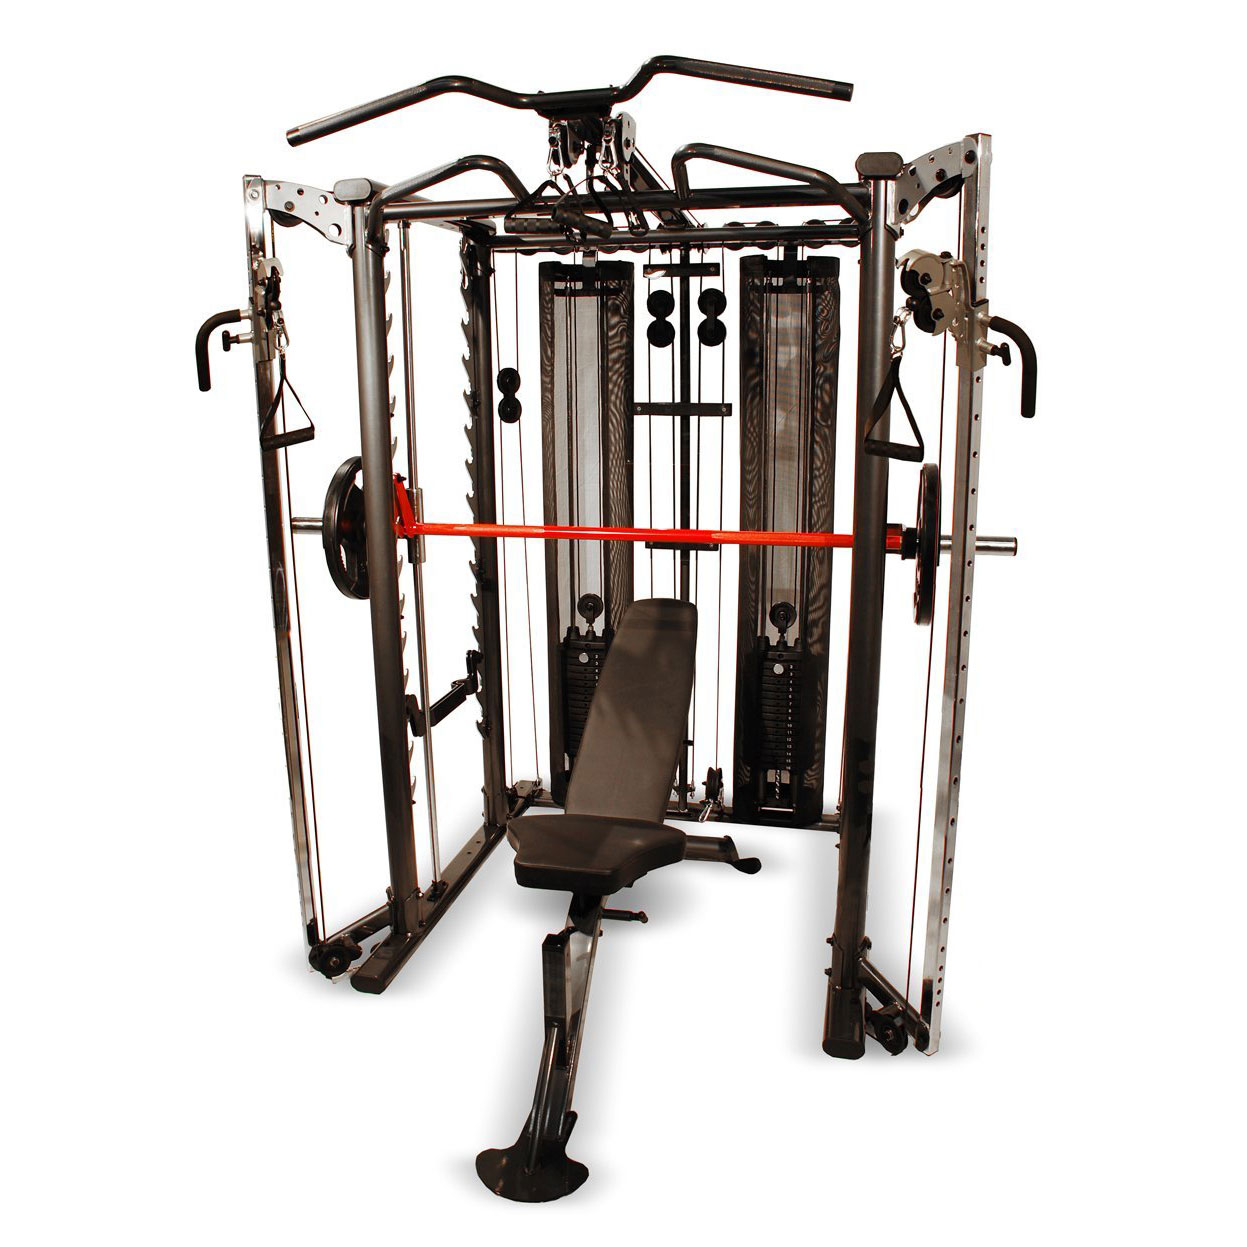 Inspire Full Smith Cage System With Adjustable Bench